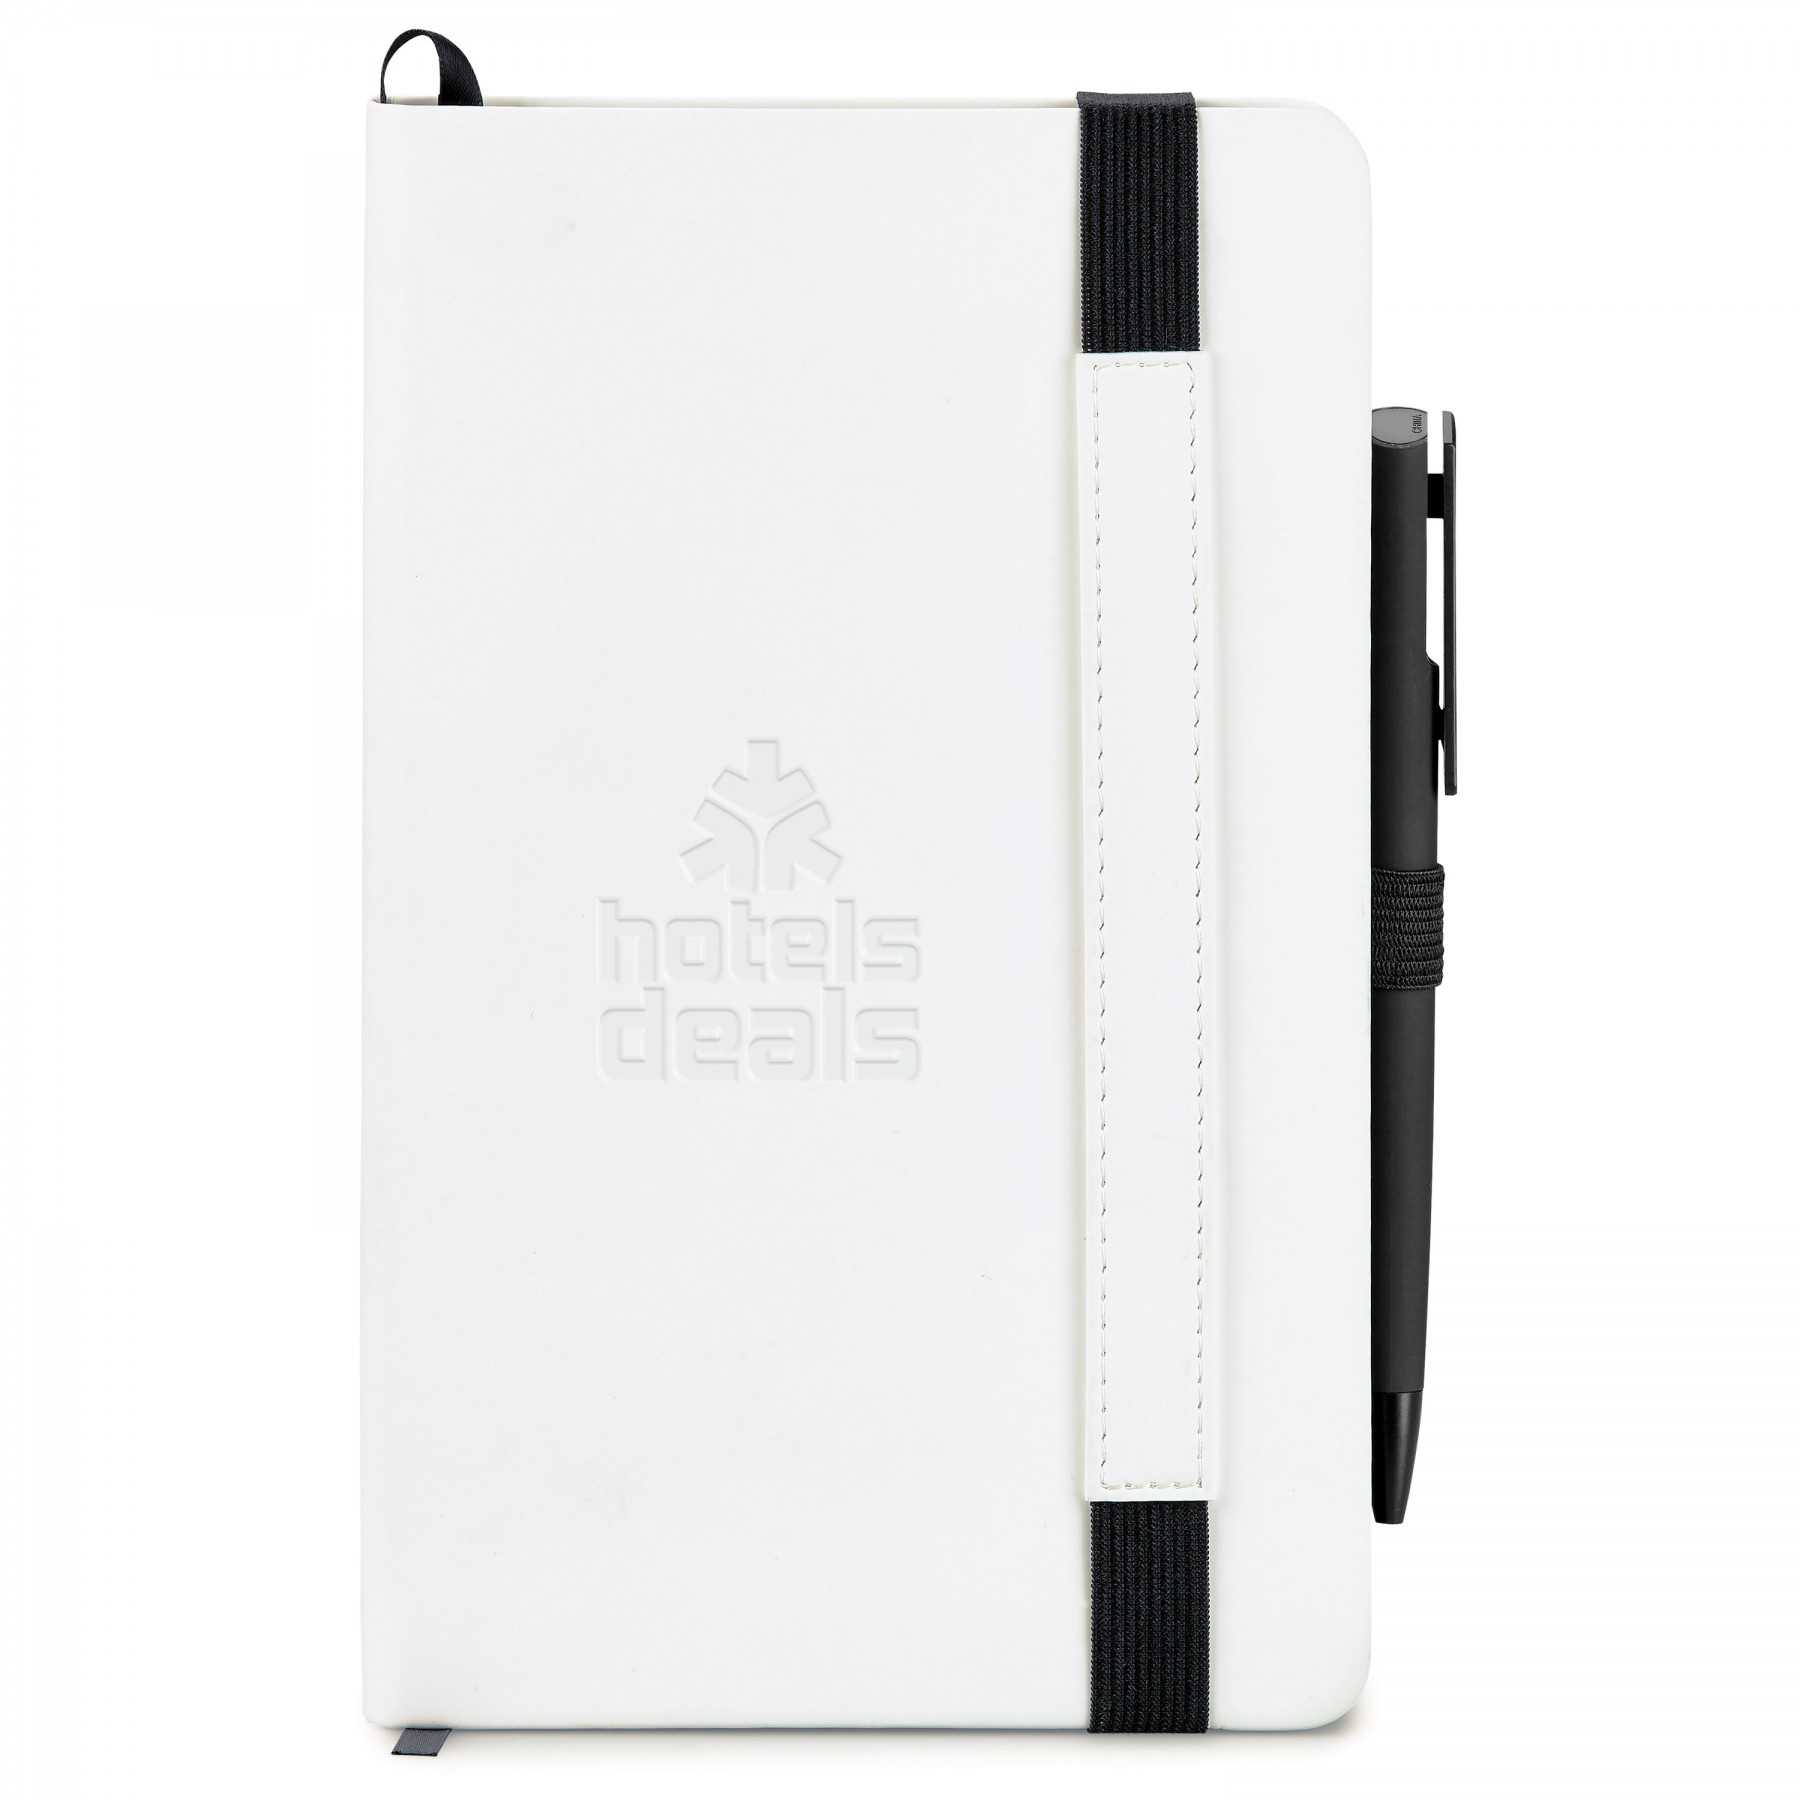 Hard Cover Non-Refillable Journal Combo, ST4716, Debossed Logo